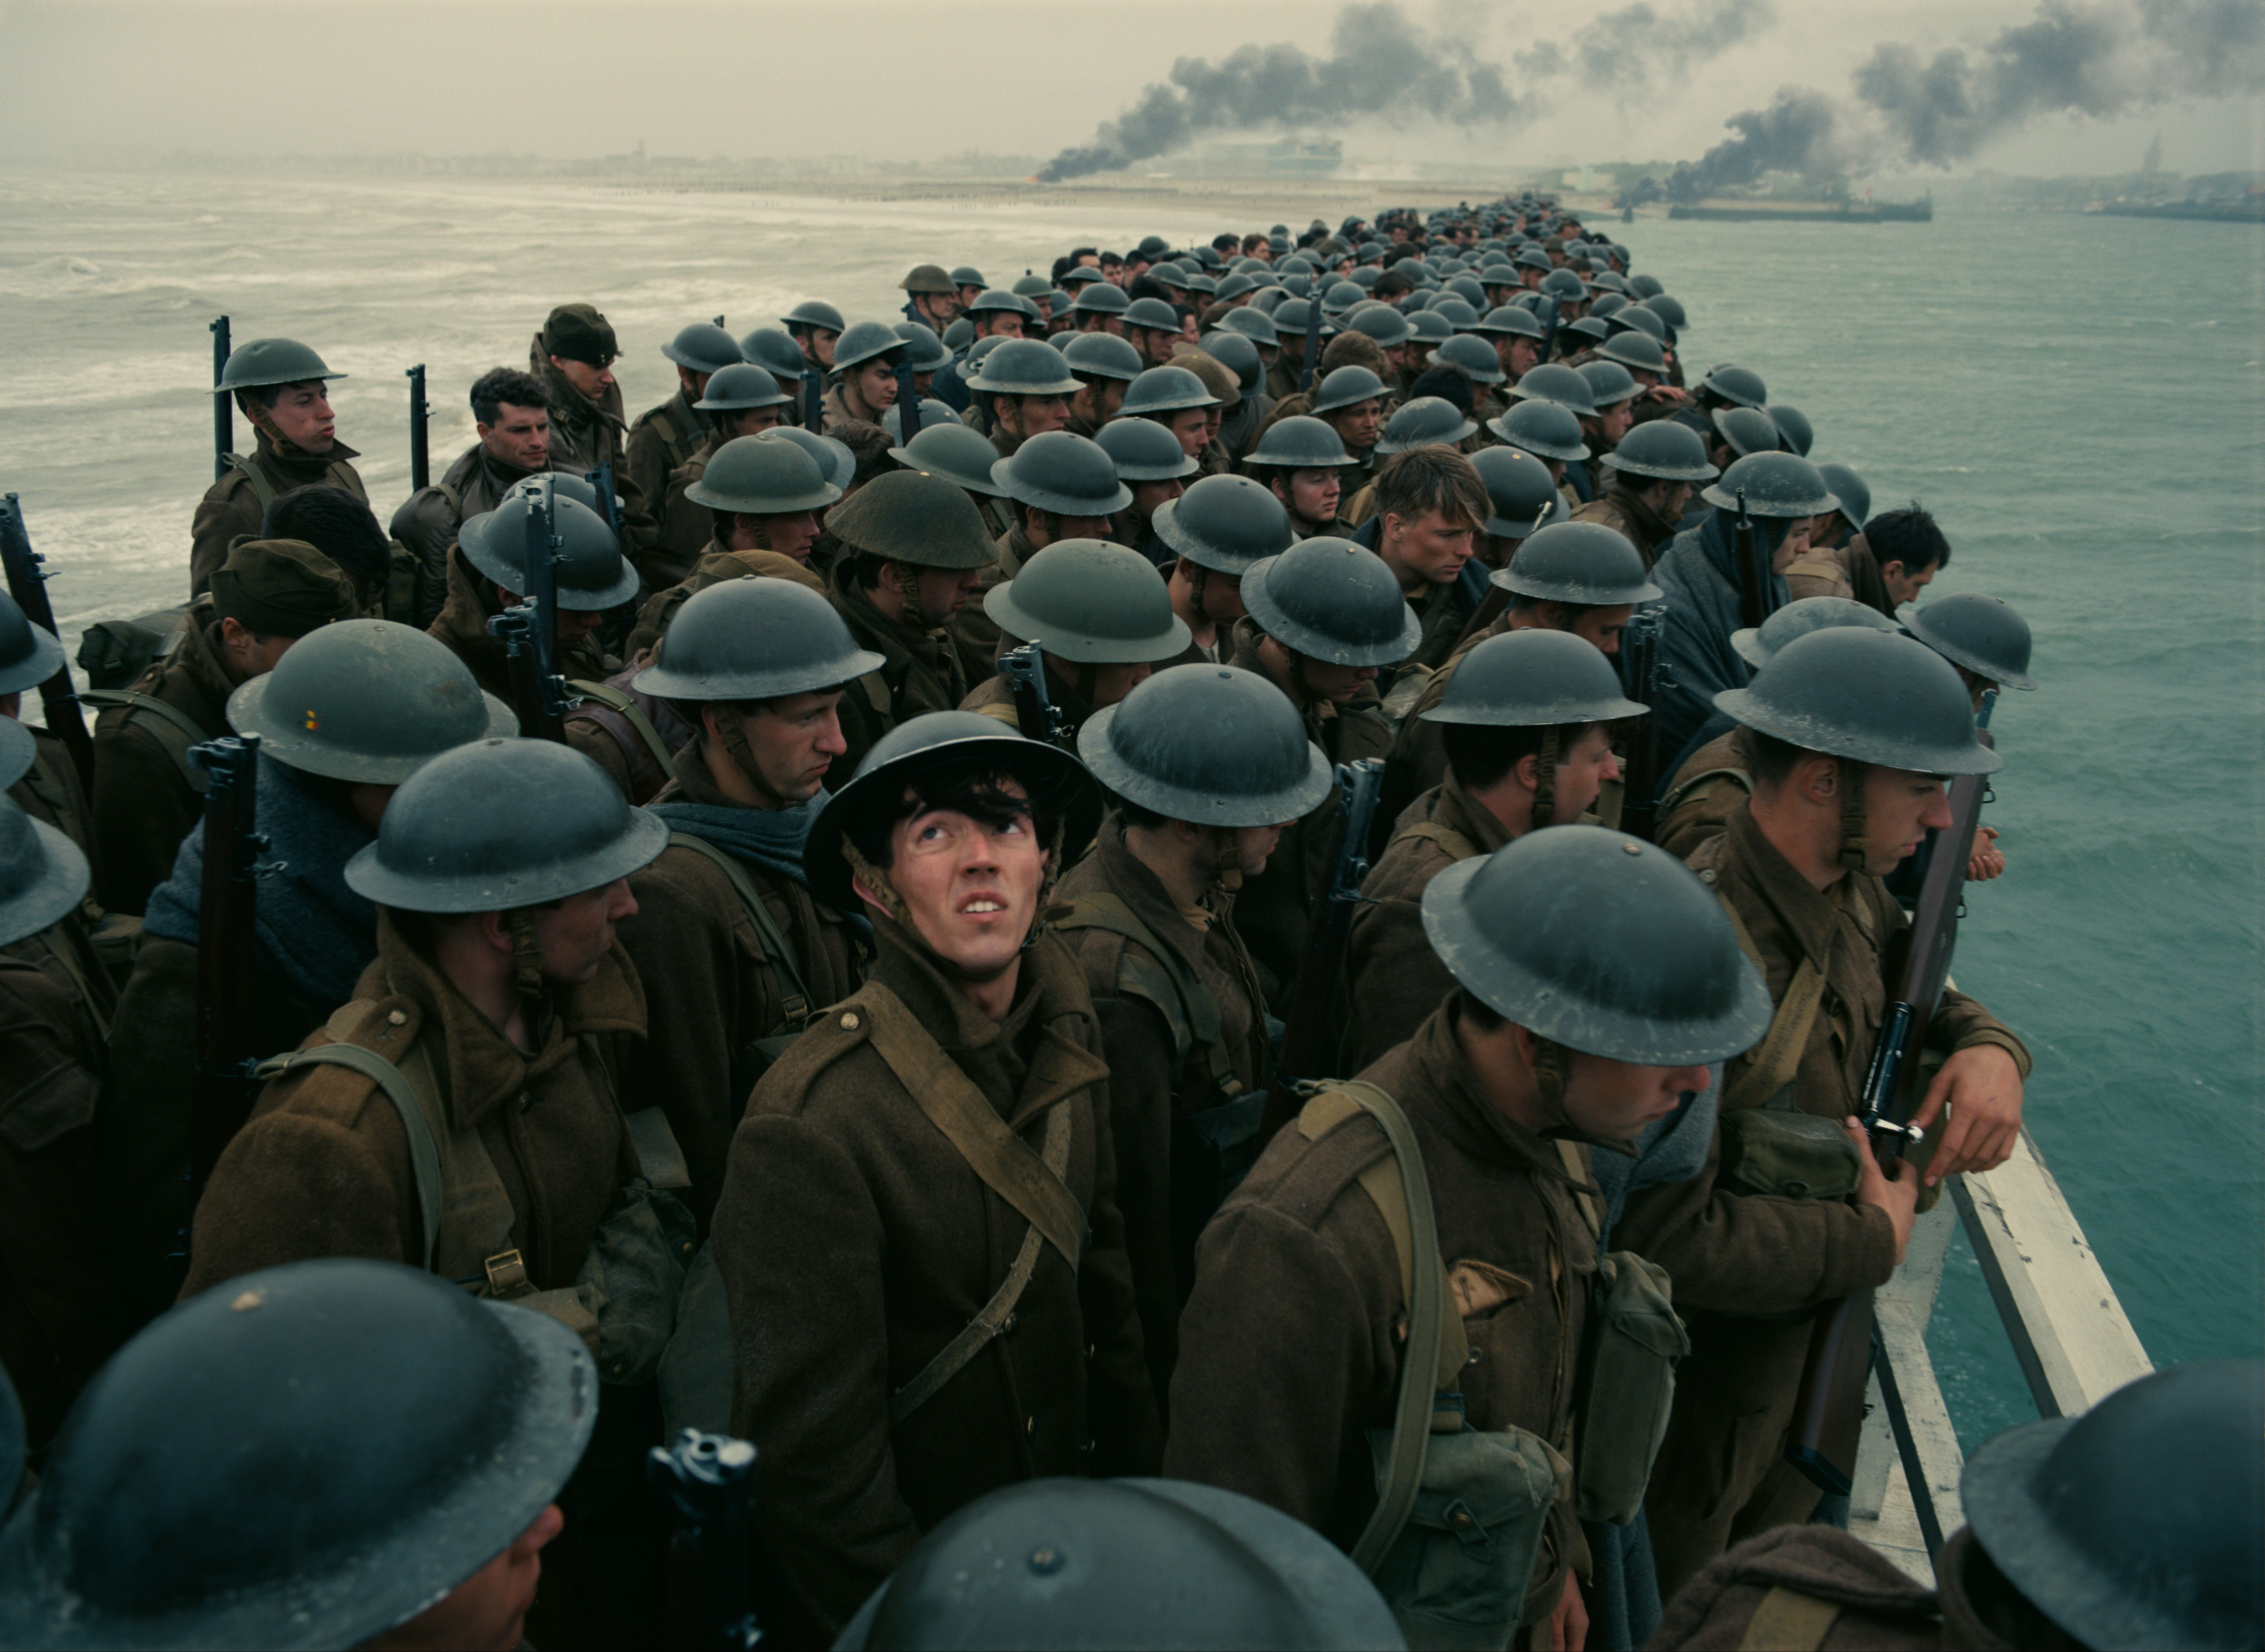 Dunkirk\u0027: How historically accurate is Christopher Nolan\u0027s WWII film?